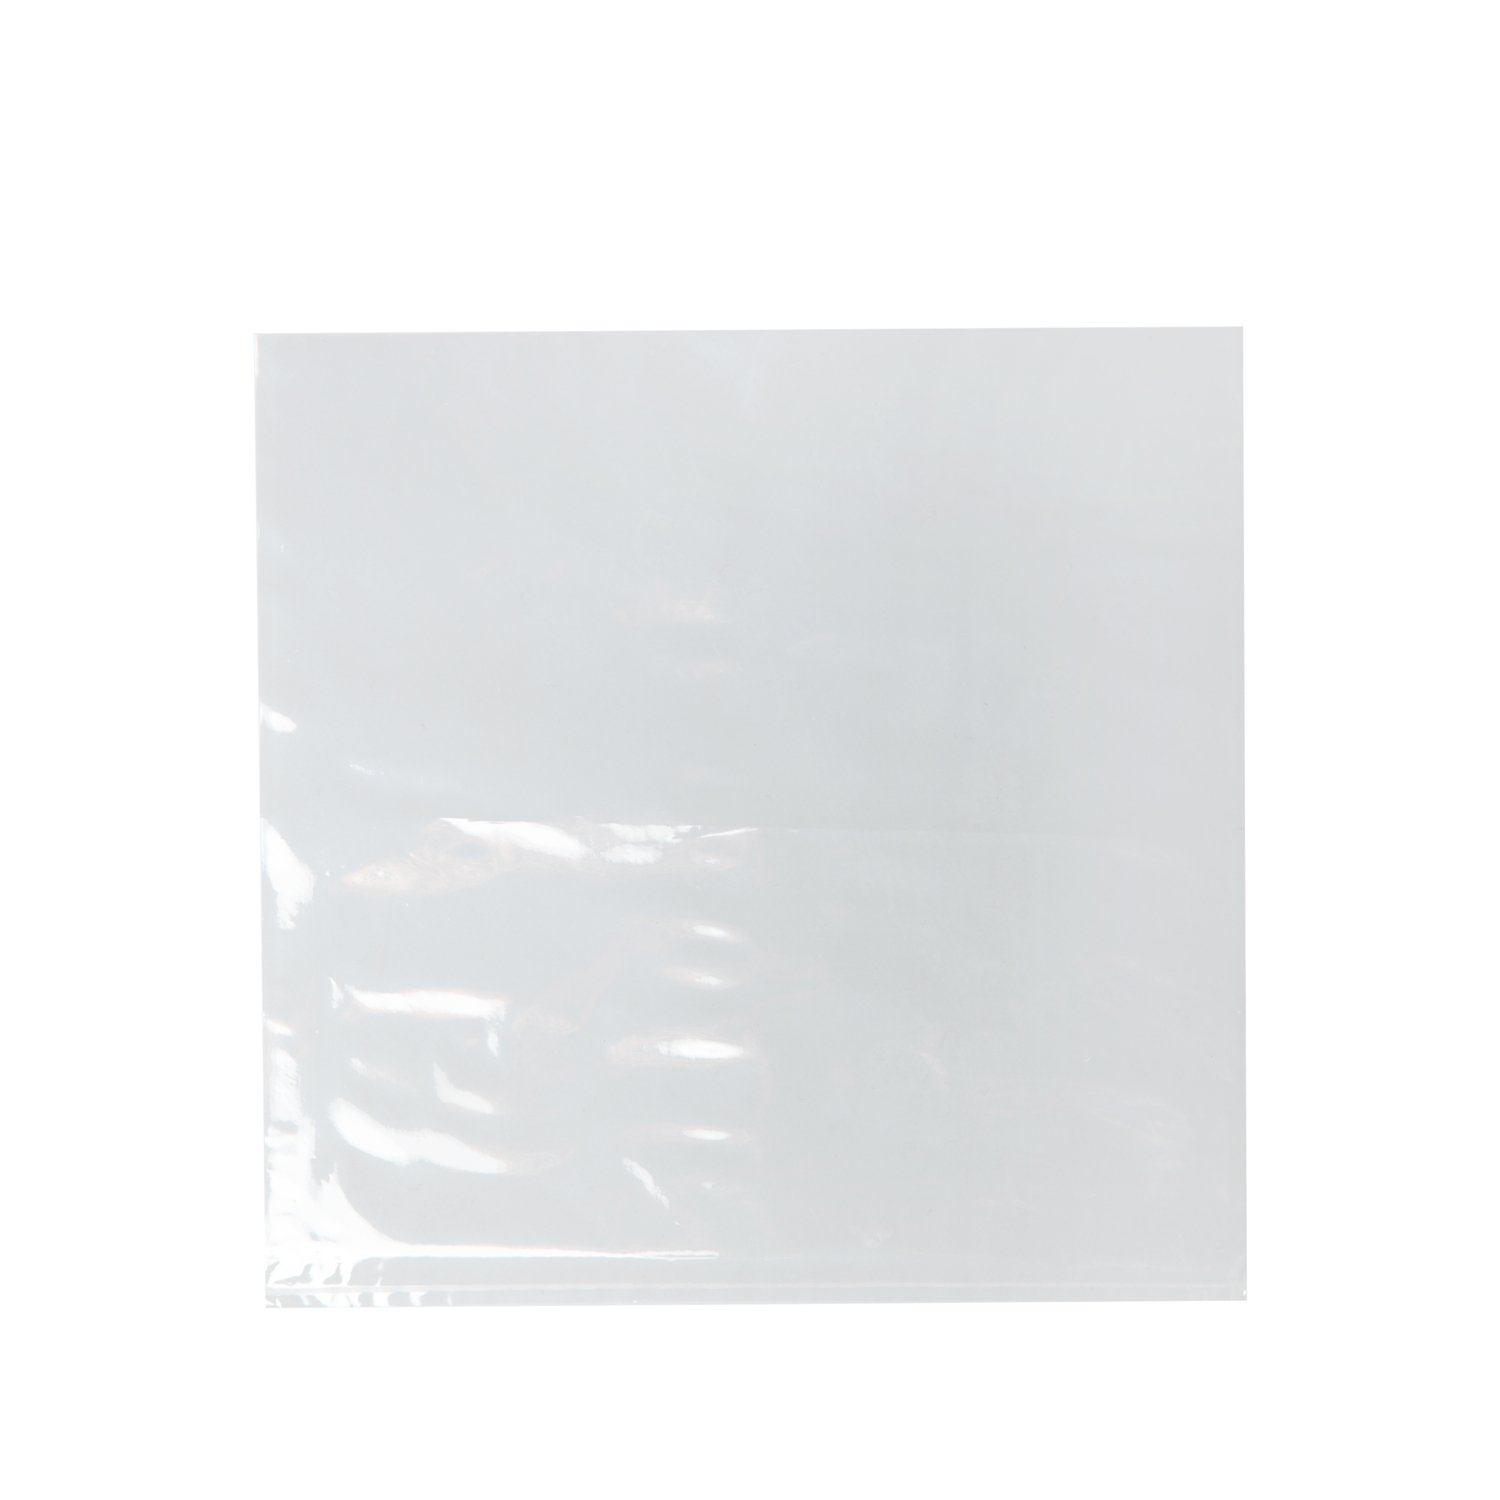 LazyMe 32x40 inch, Basket Cellophane Shrink Bags,  Shrink Wrap Bags Large, Clear, 5 Packs by LazyMe (Image #6)